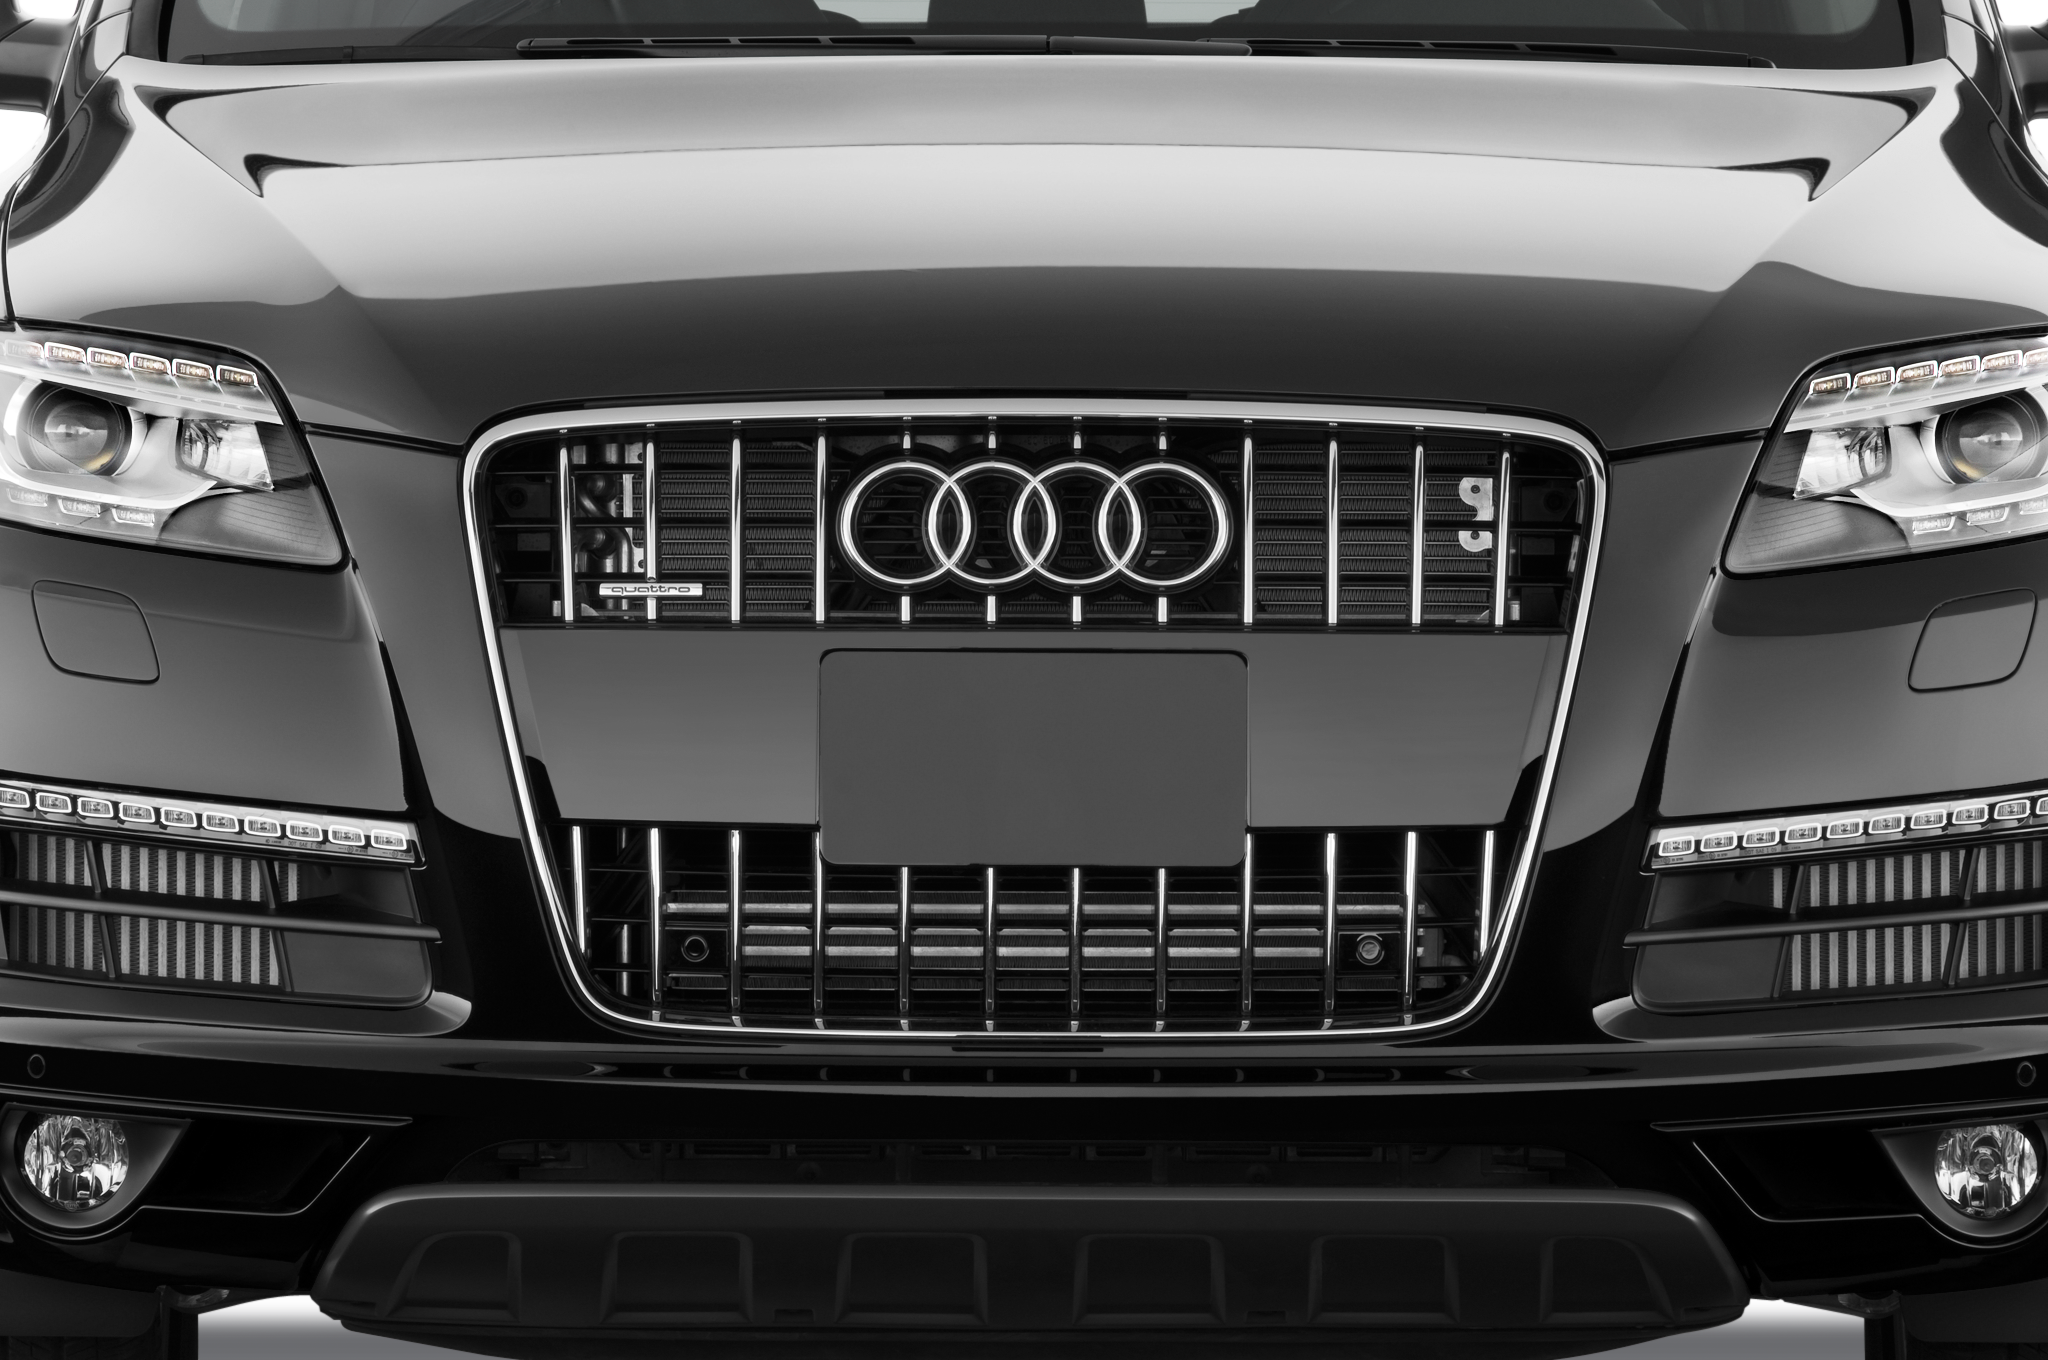 Je Design Tunes Up The Euro Spec Audi Q7 30 Tdi Gives It A Body Kit Headlight Wiring Harness 10 25